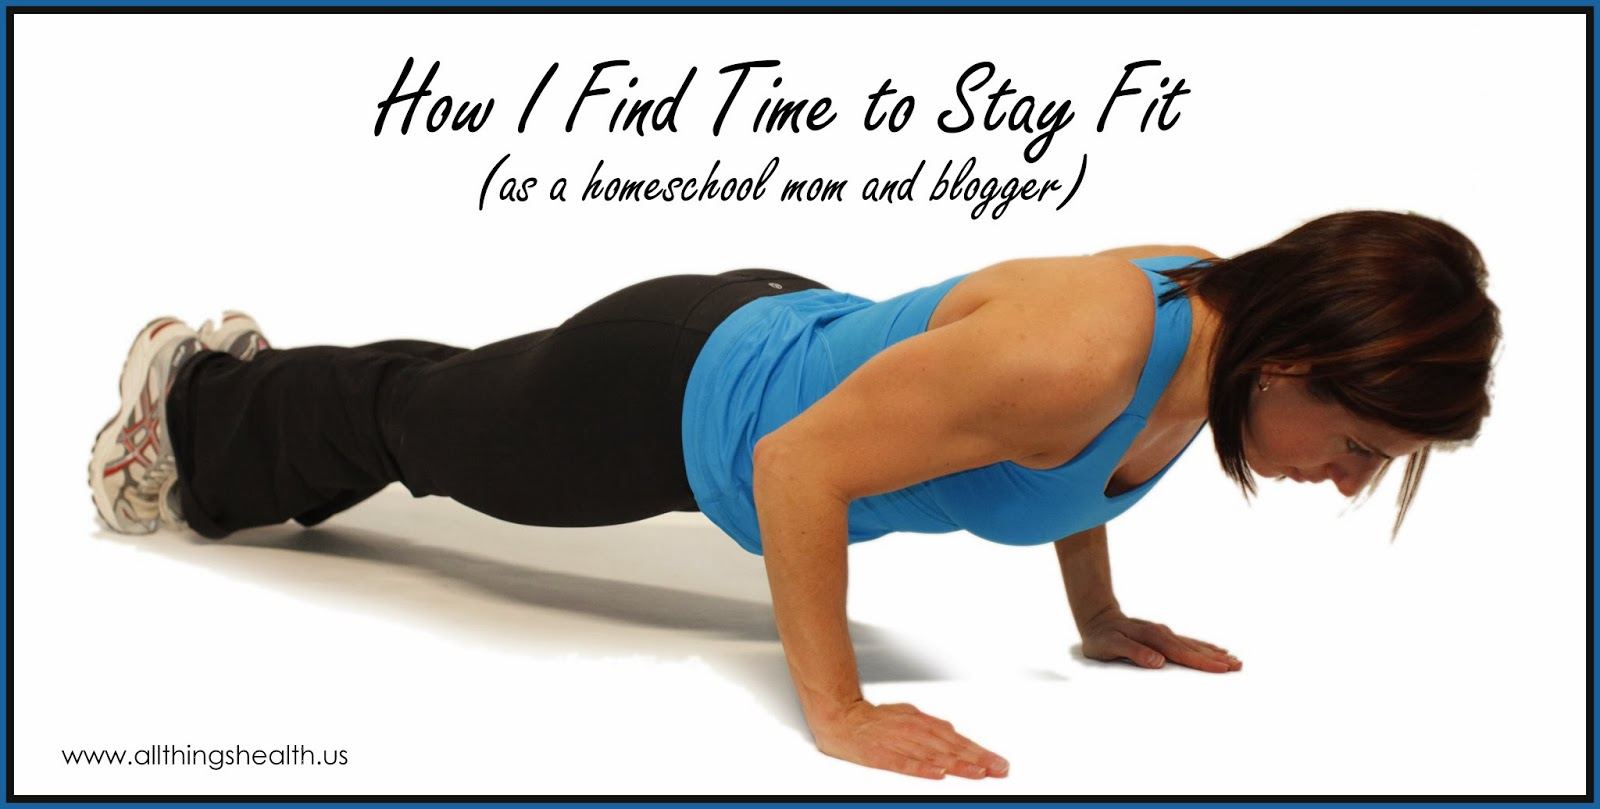 Tips on keeping fit for busy moms.